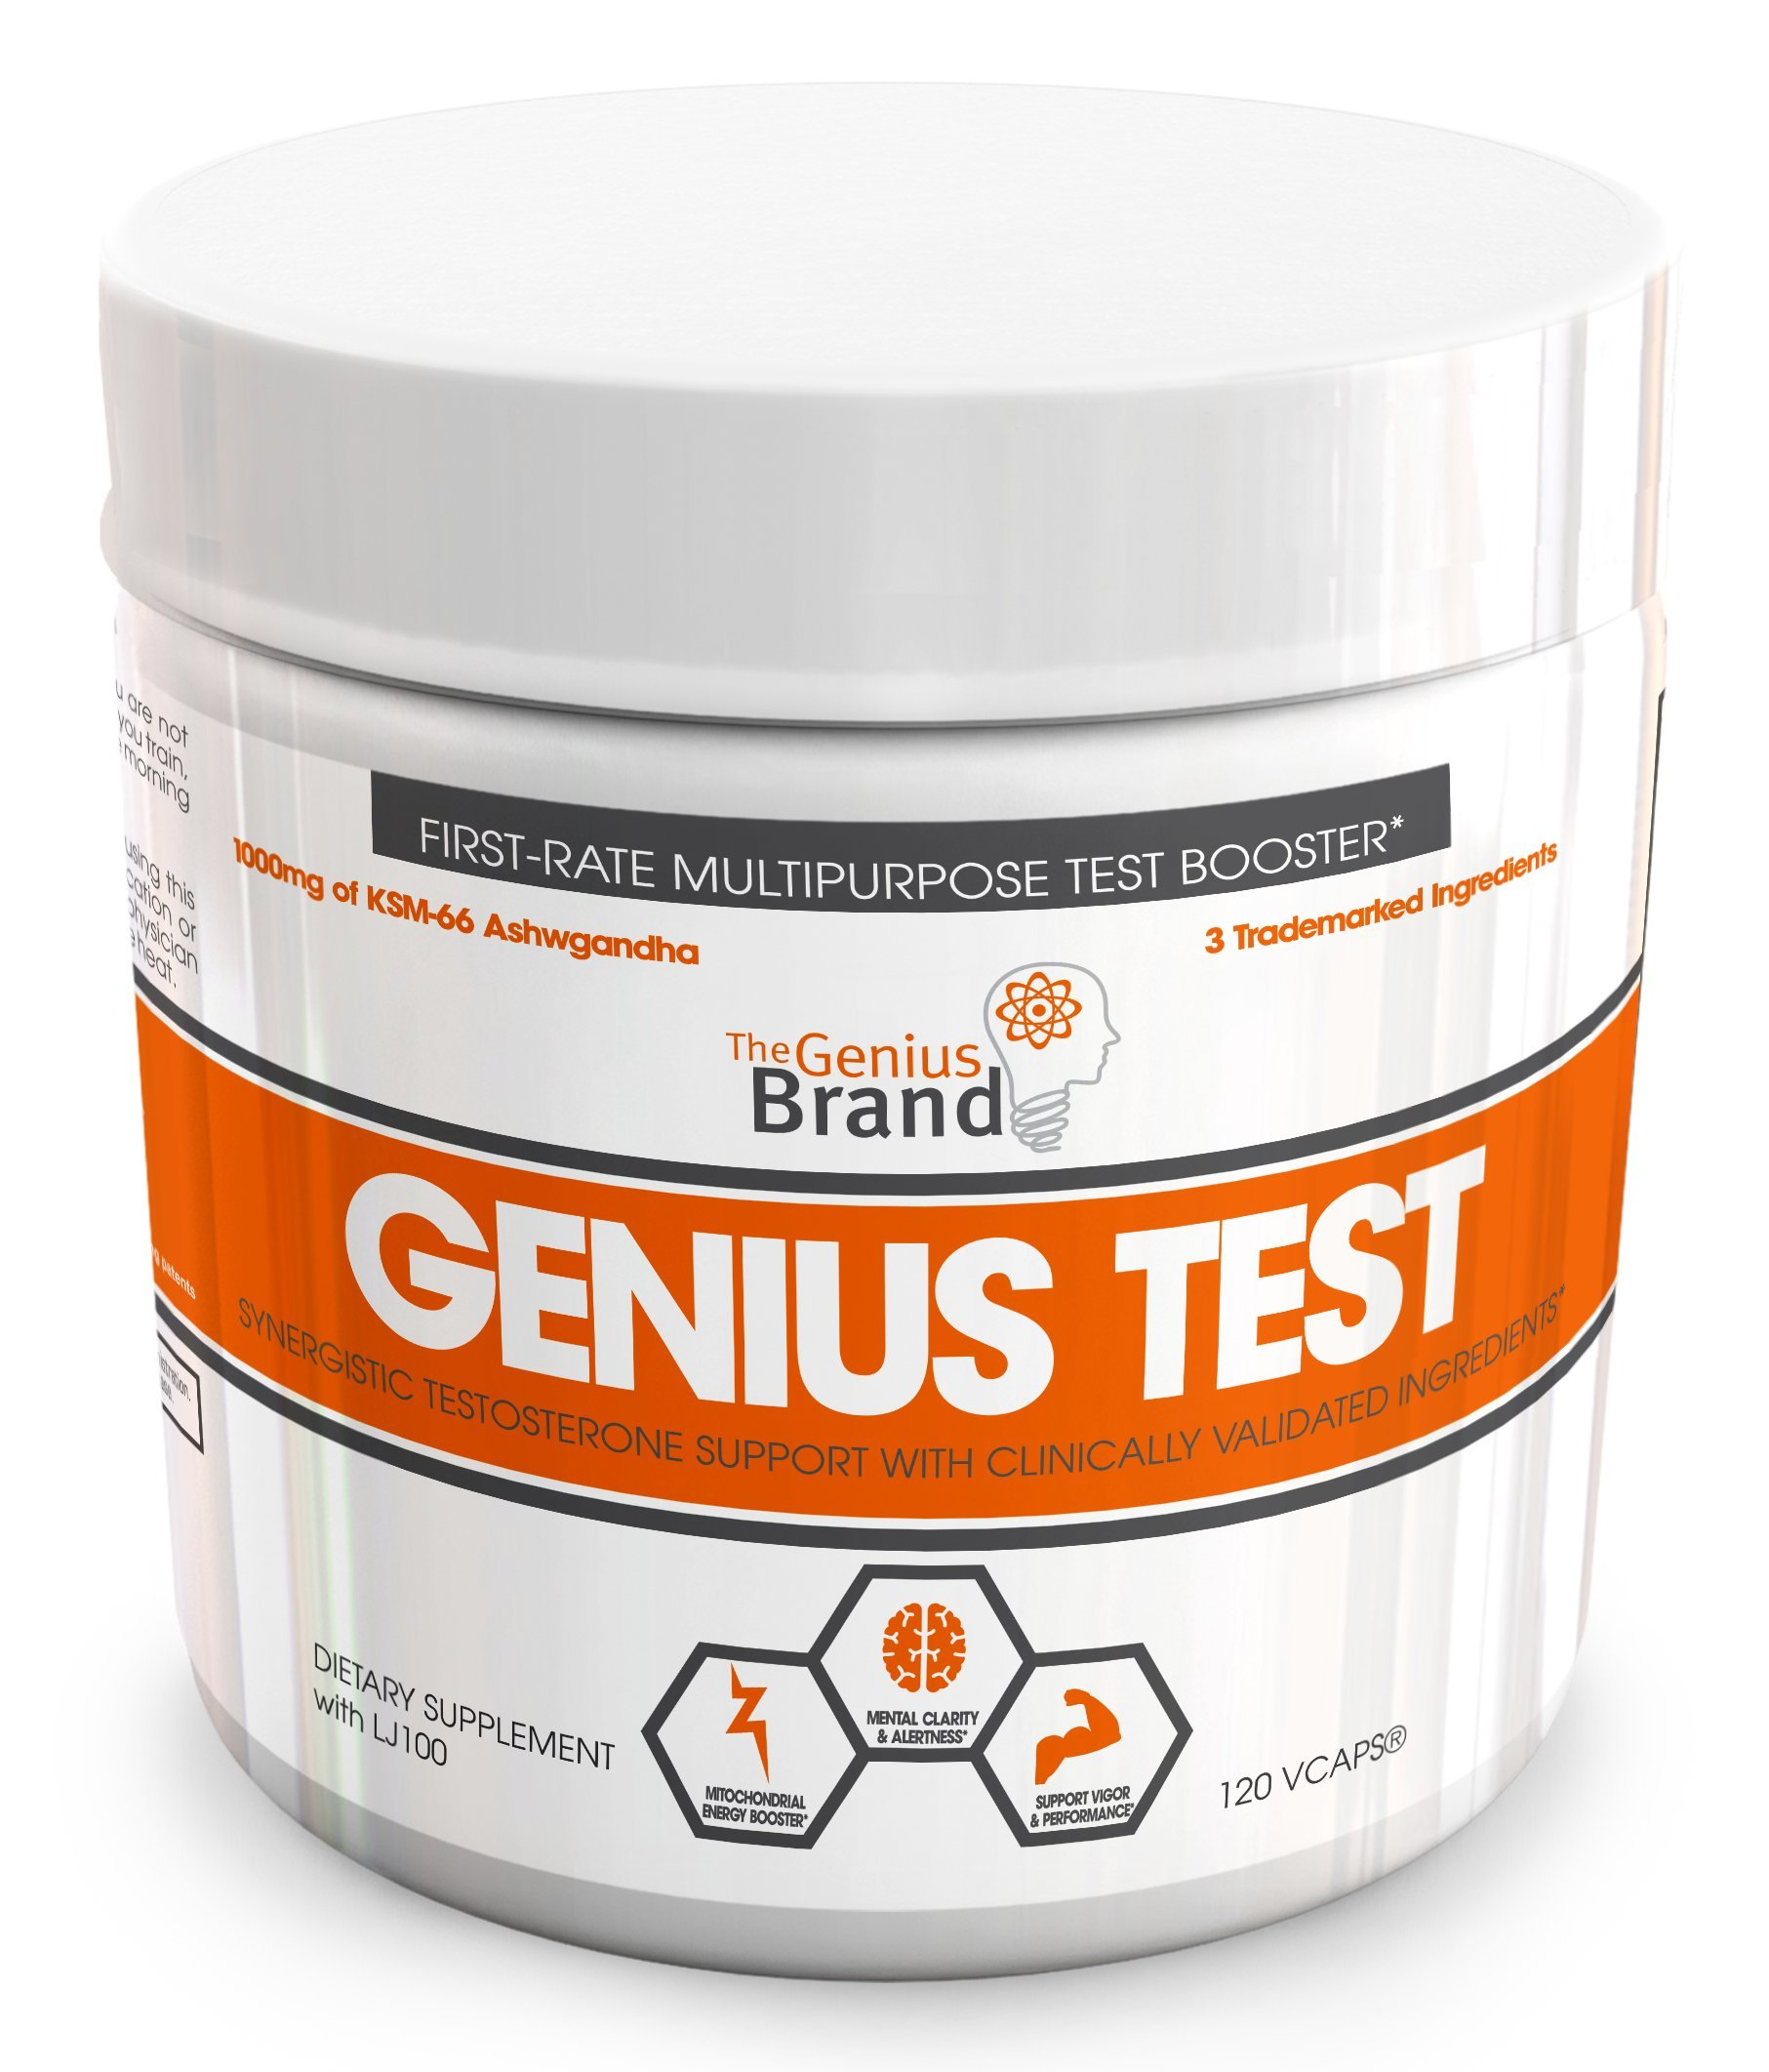 GENIUS TEST - The Smart Testosterone Booster, Dynamic Natural Energy Supplement, Brain Support, Libido, Fat Loss & Muscle Building with Trademarked Ashwagandha, Shilajit and Tongkat Ali, 30 Day Cycle